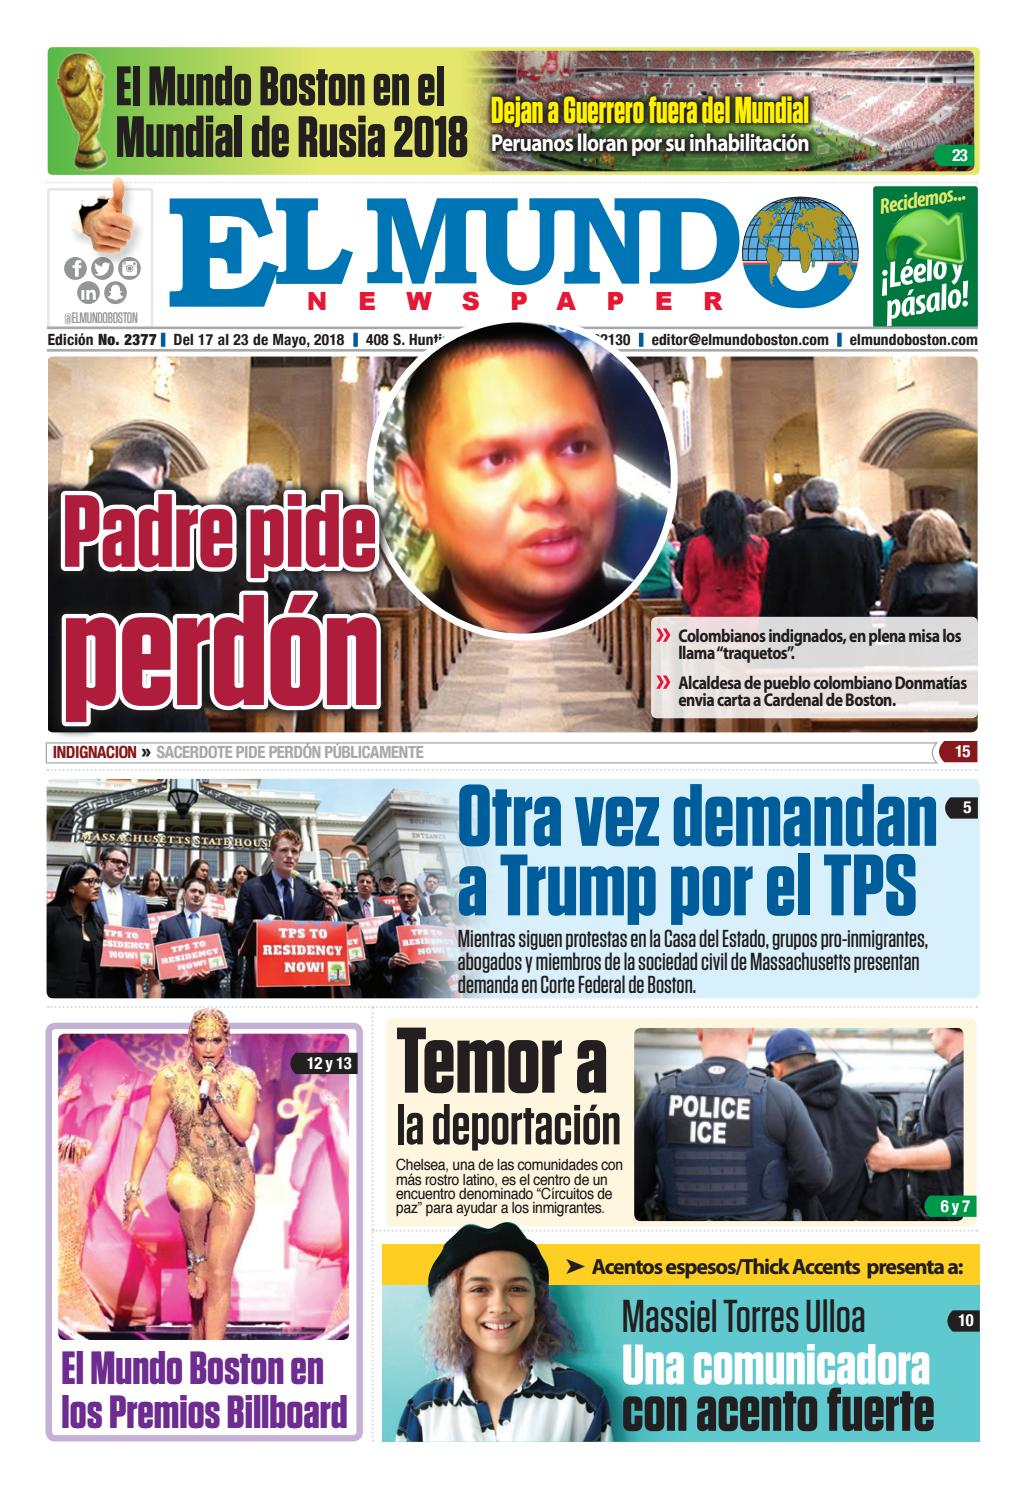 El Mundo Boston | Newspaper | May 17, 2018 by El Mundo Boston ...